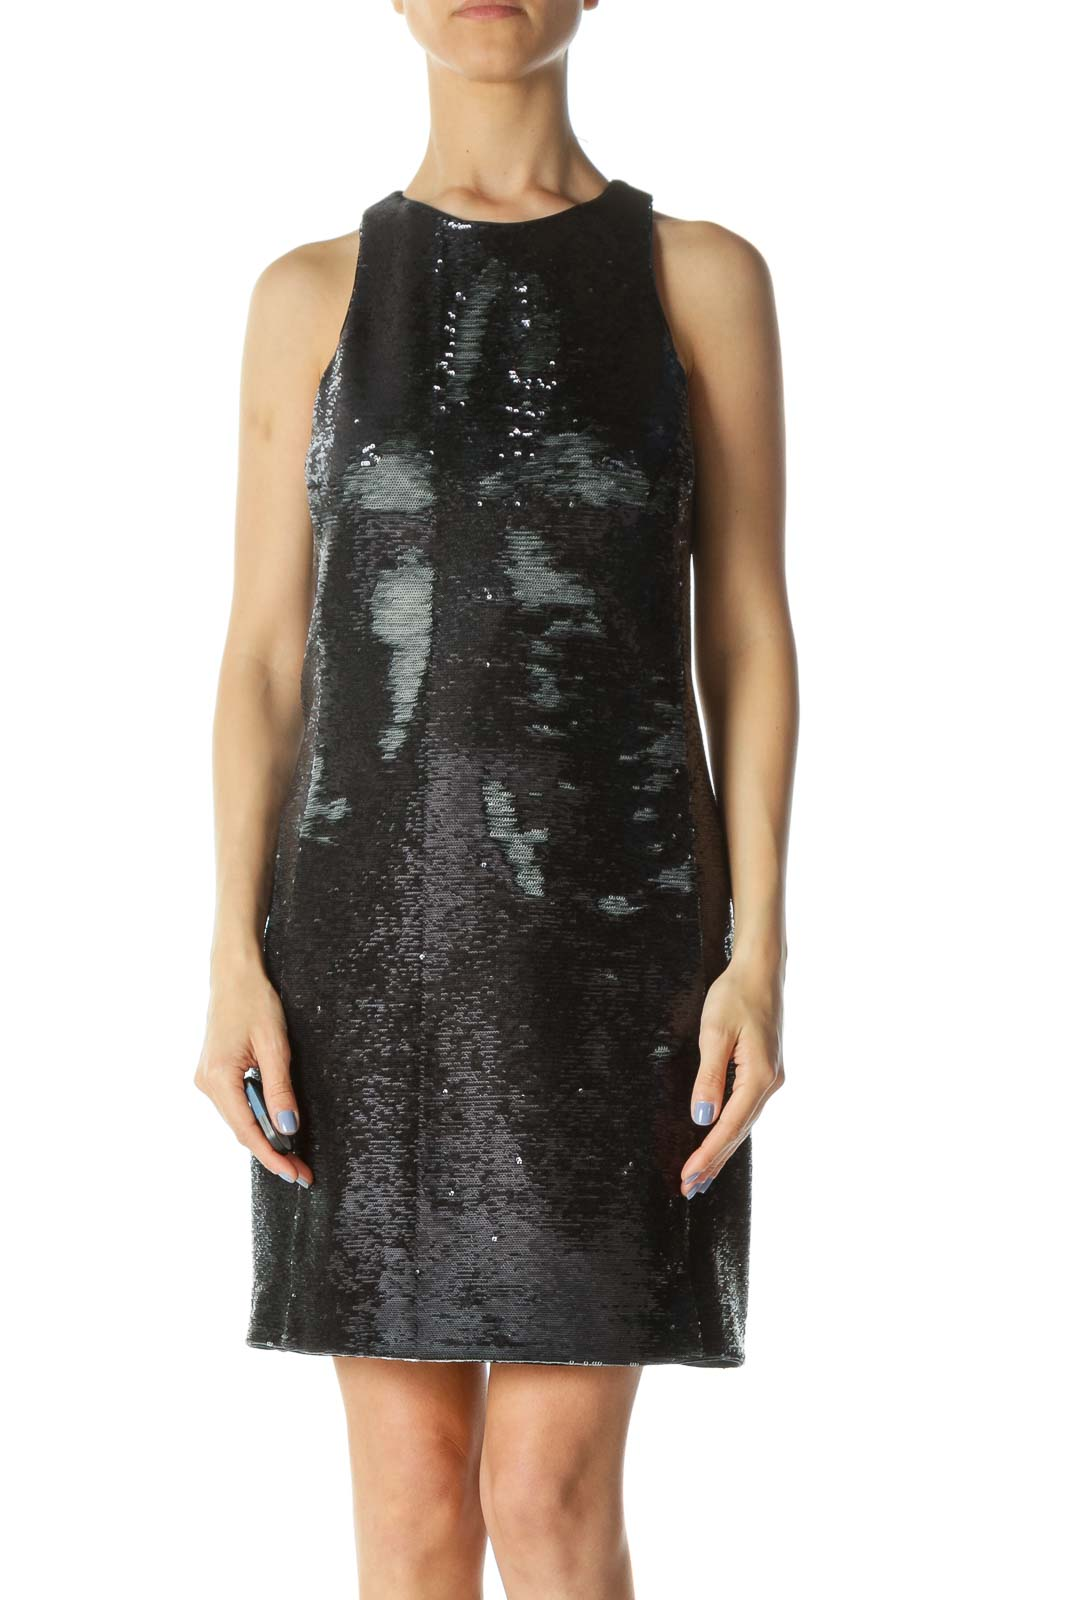 Black/Silver Sequined High-Round-Neck Lined Cocktail Dress